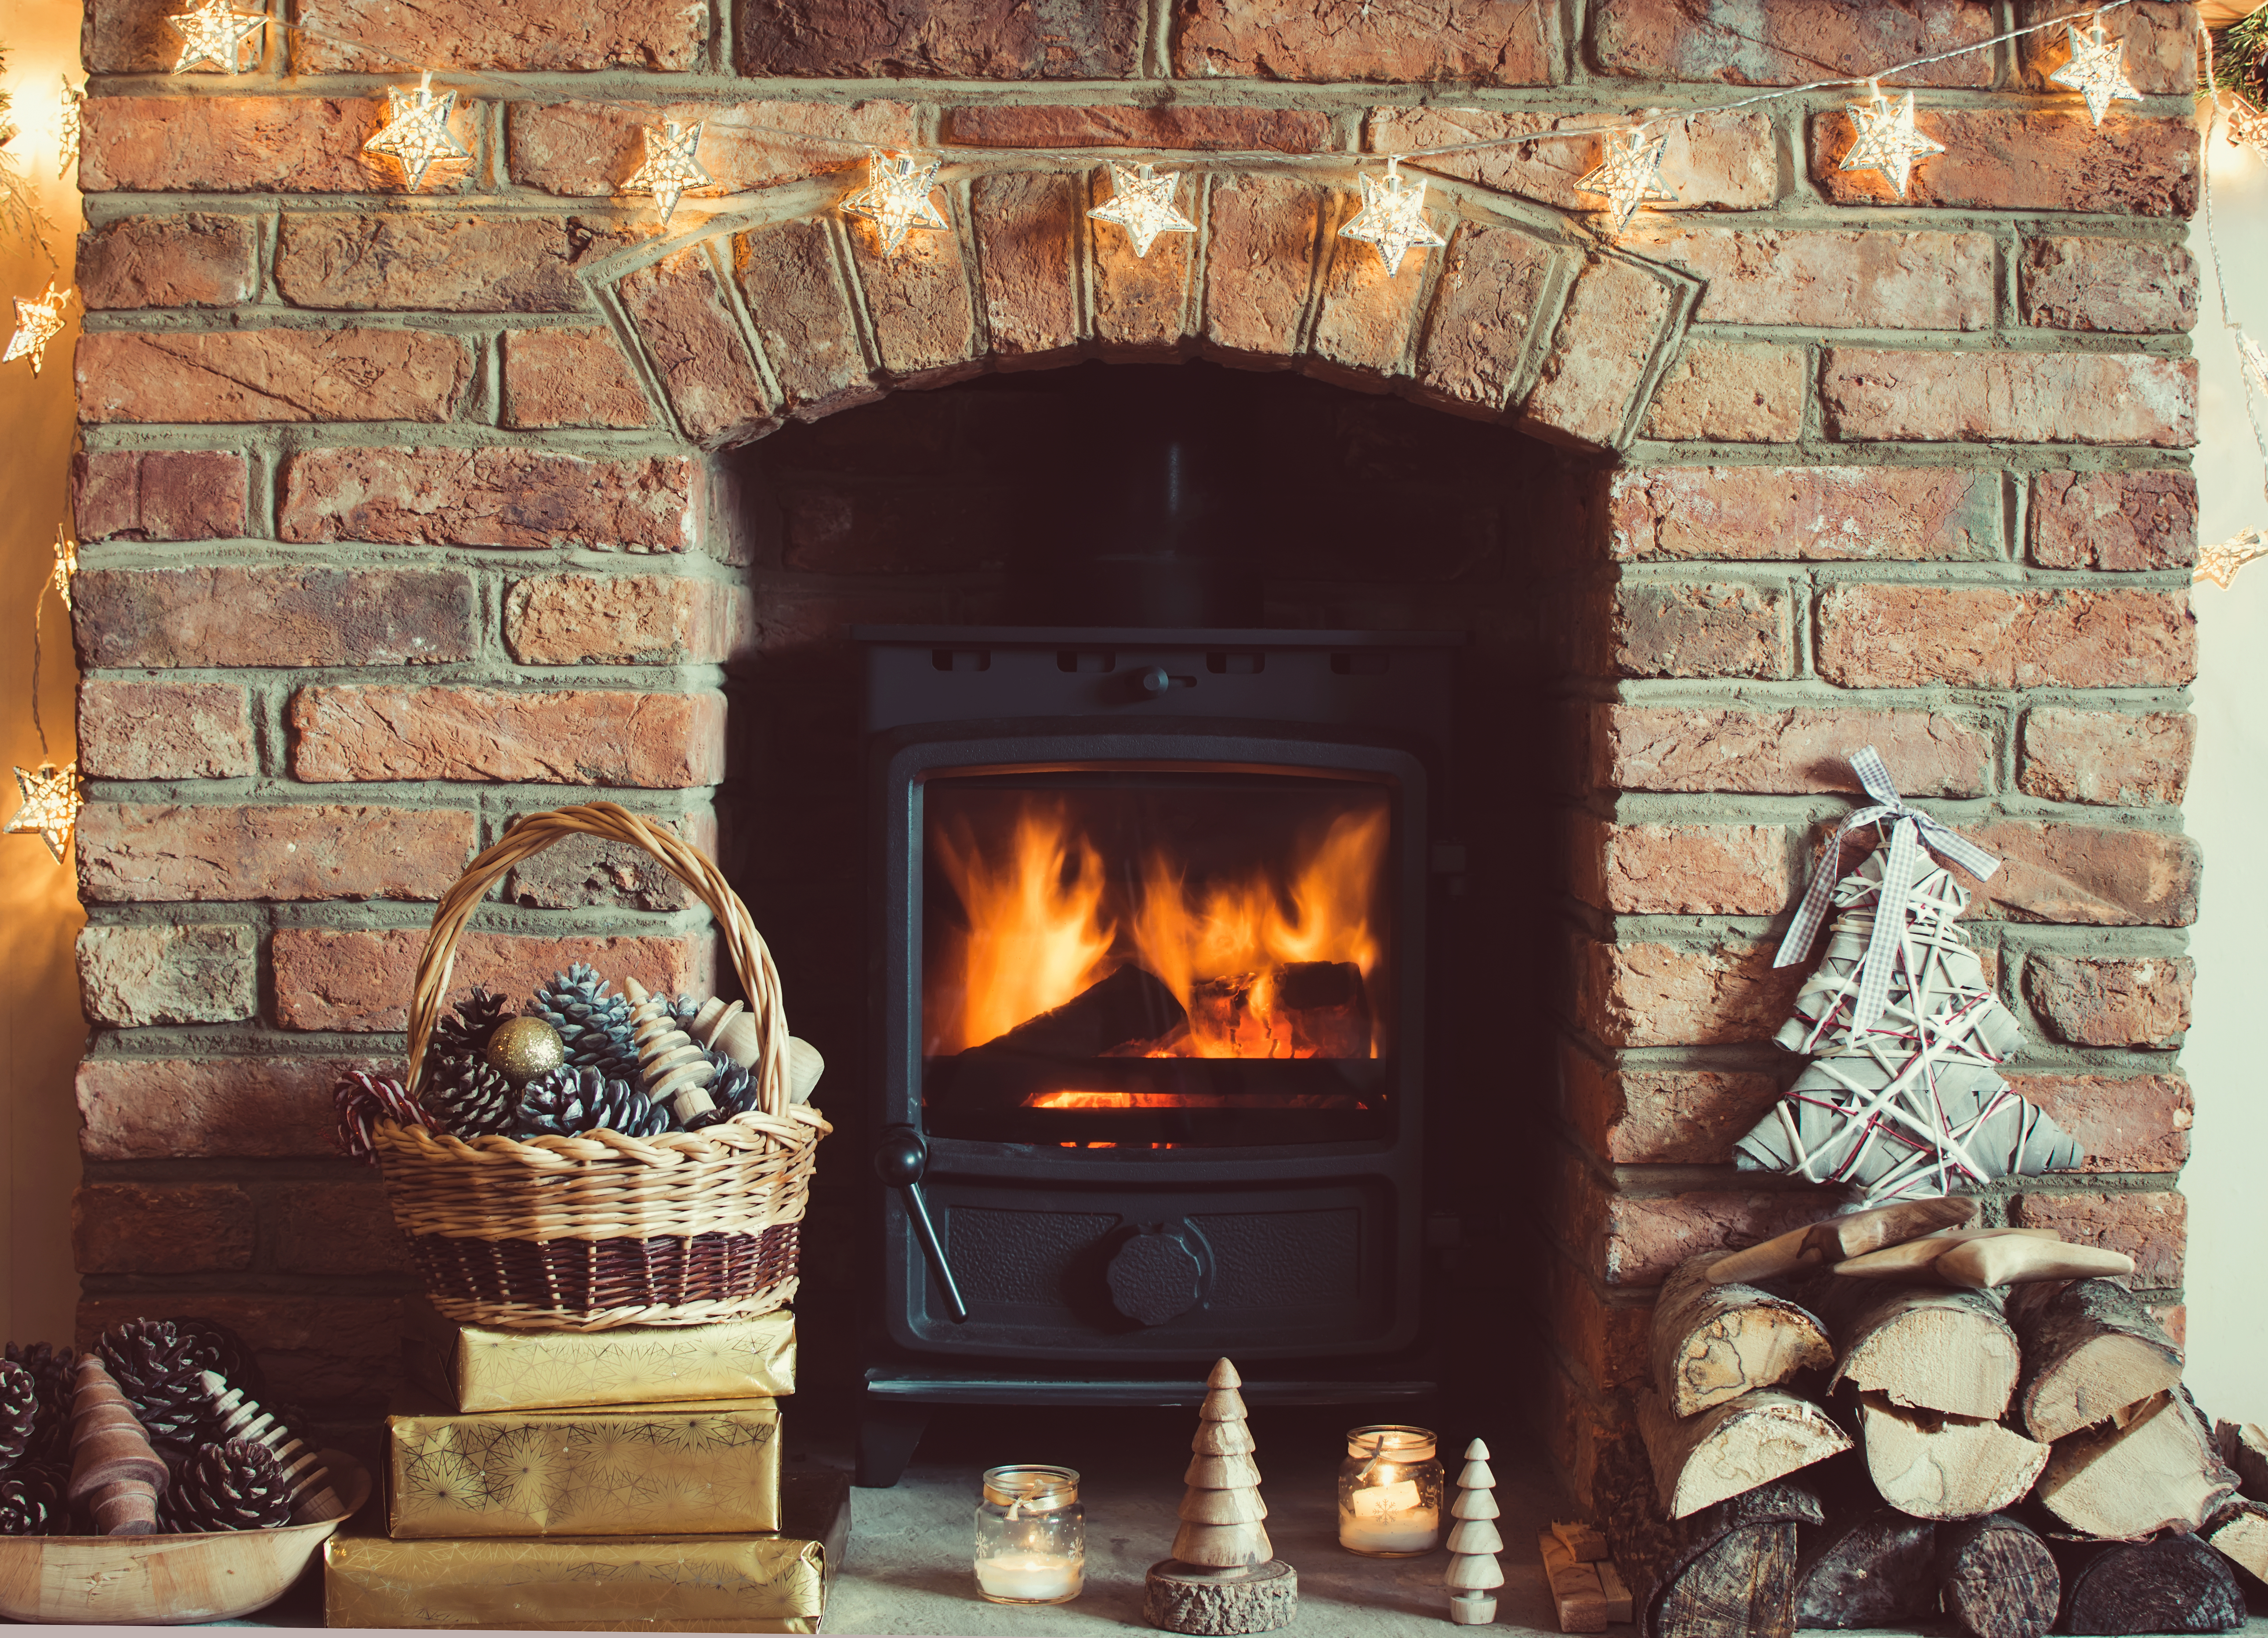 How To Use An Old Fireplace With No Damper Hunker